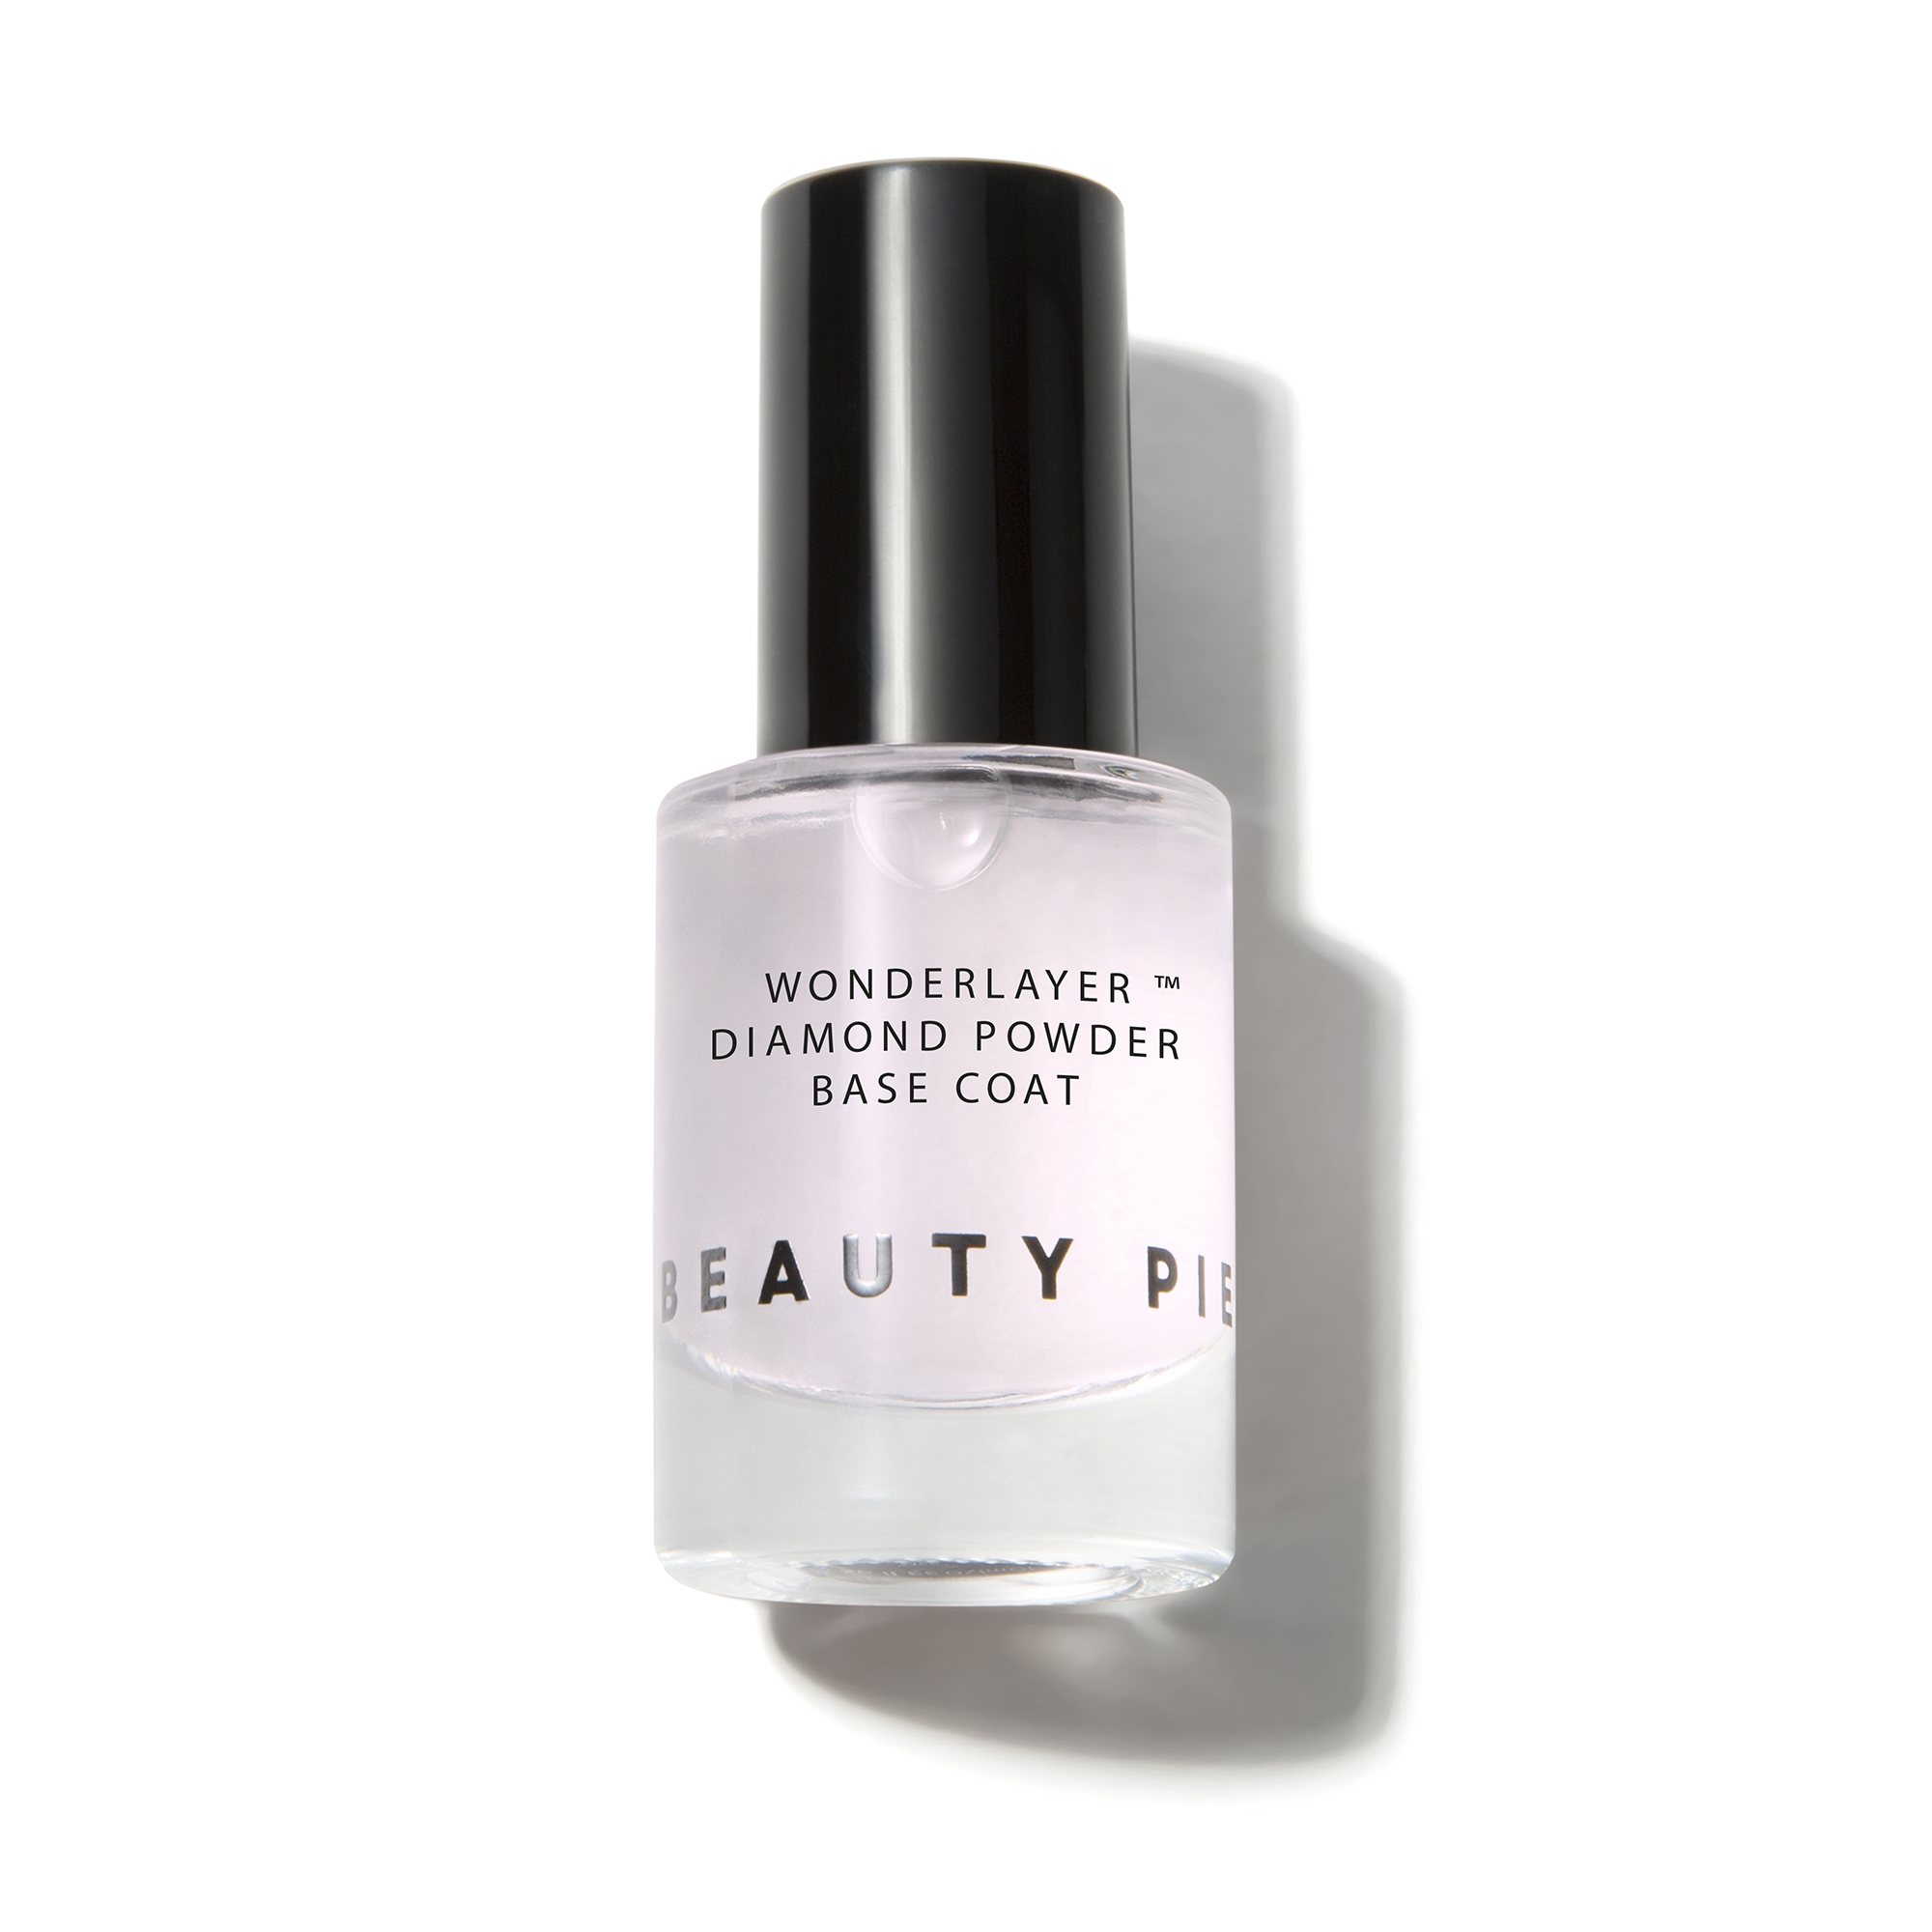 Wonderlayer™ Diamond Powder Base Coat by Beauty Pie